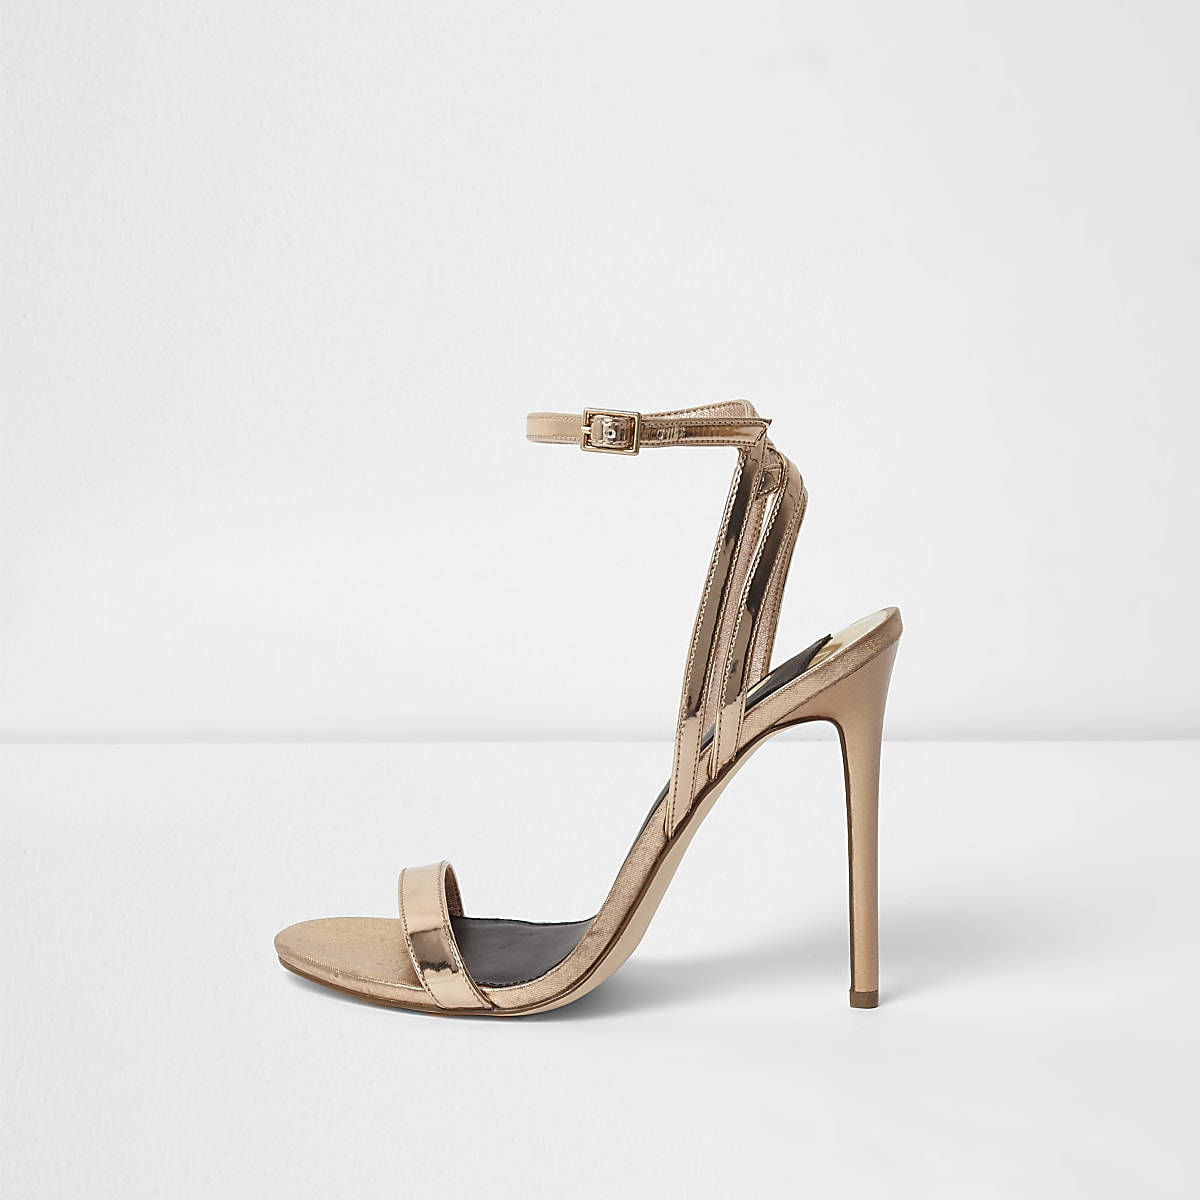 23166b495140 Gold metallic barely there sandals Gold metallic barely there sandals ...